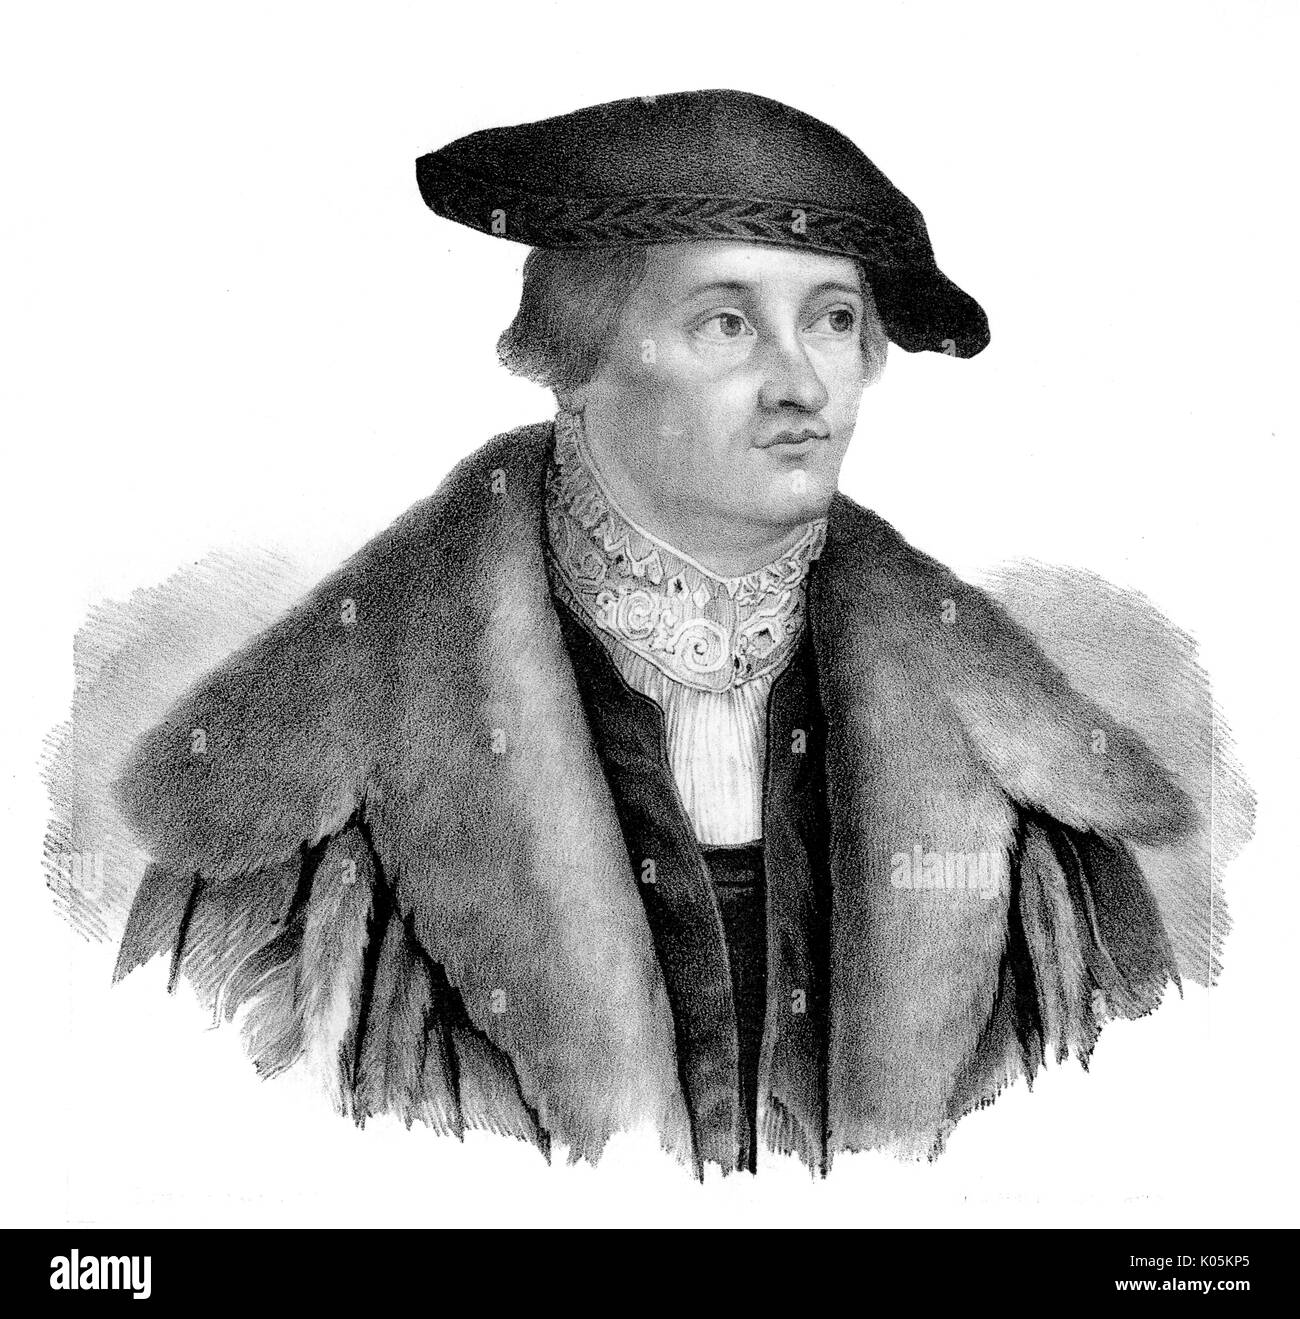 Georg Spalatin (Burckhardt) (1484 - 1545), German reformer, associated with Luther       Date: - Stock Image